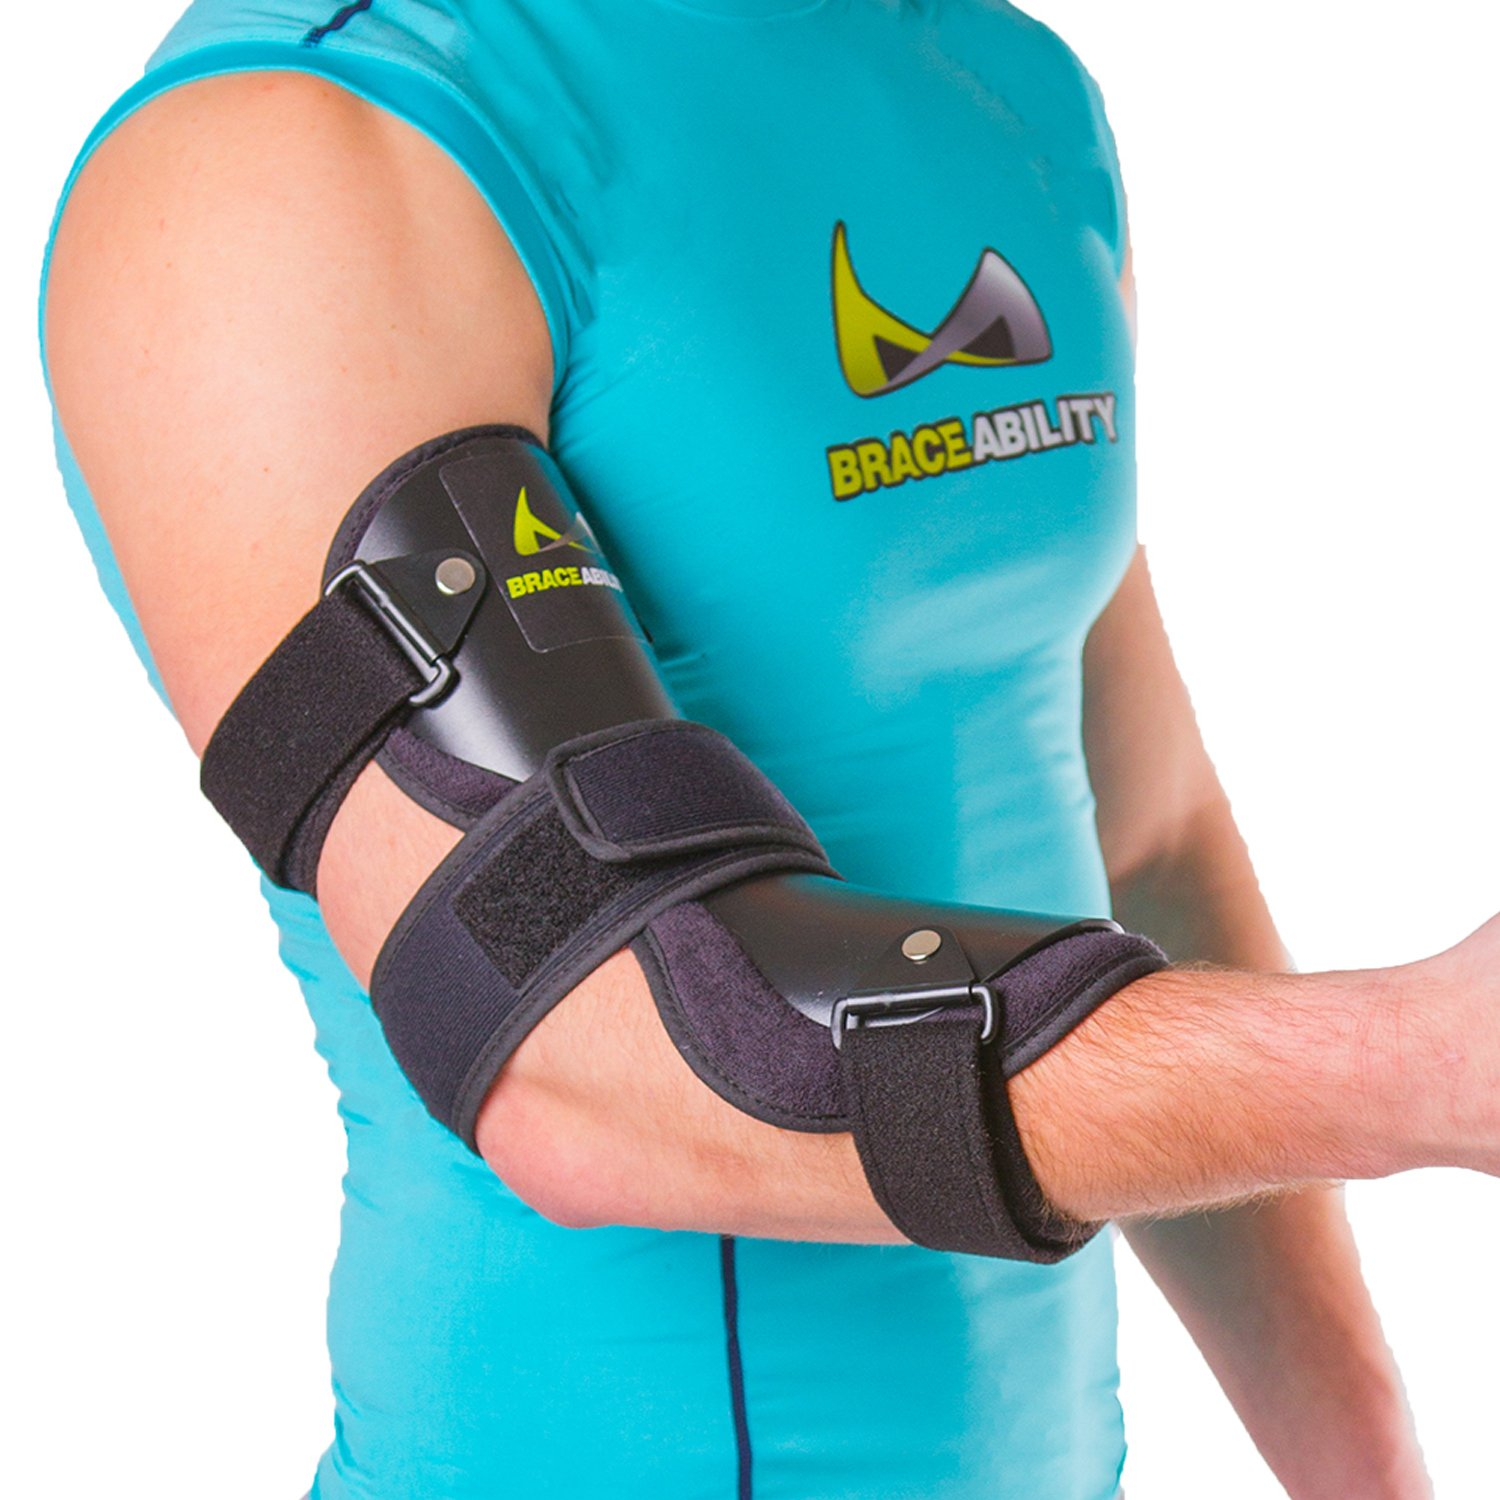 BraceAbility Cubital Tunnel Syndrome Elbow Brace | Splint to Treat Pain from Ulnar Nerve Entrapment, Hyperextended Elbow Prevention and Post Surgery Arm Immobilizer - M (Medium/Large) by BraceAbility